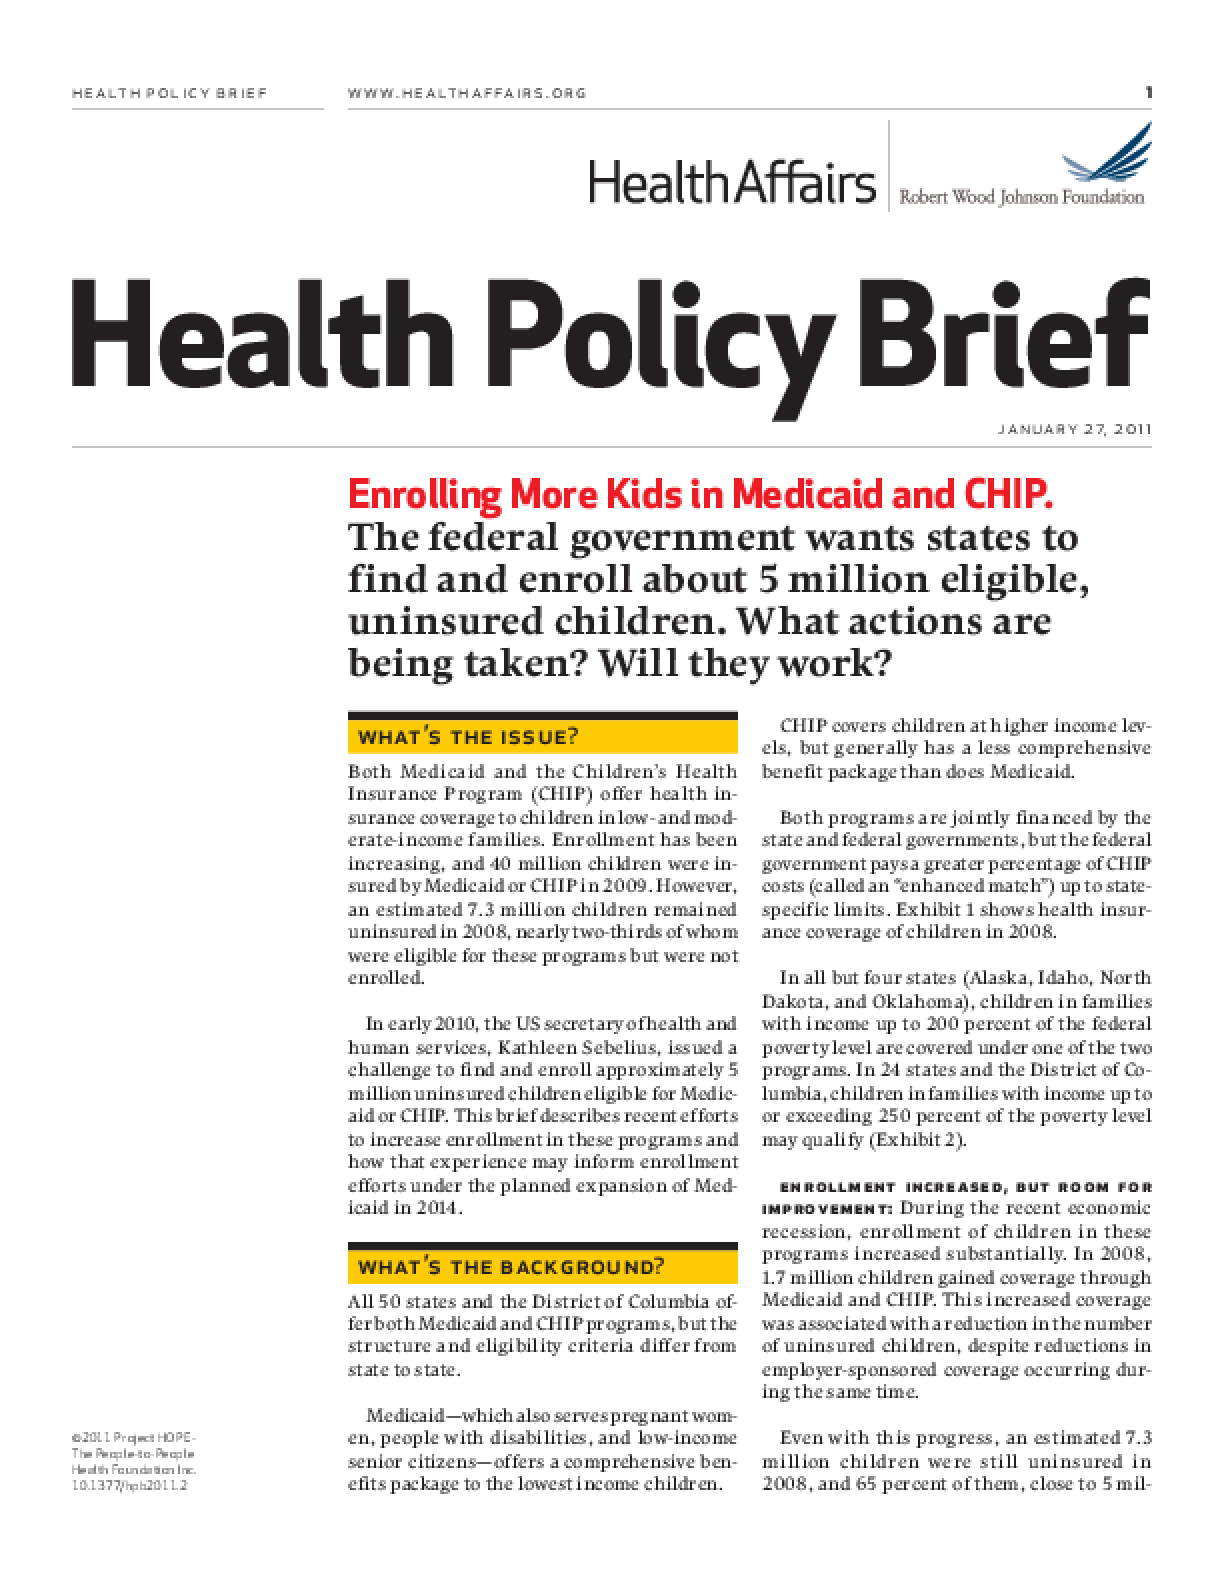 Health Affairs/RWJF Health Policy Brief: Enrolling More Kids in Medicaid and CHIP